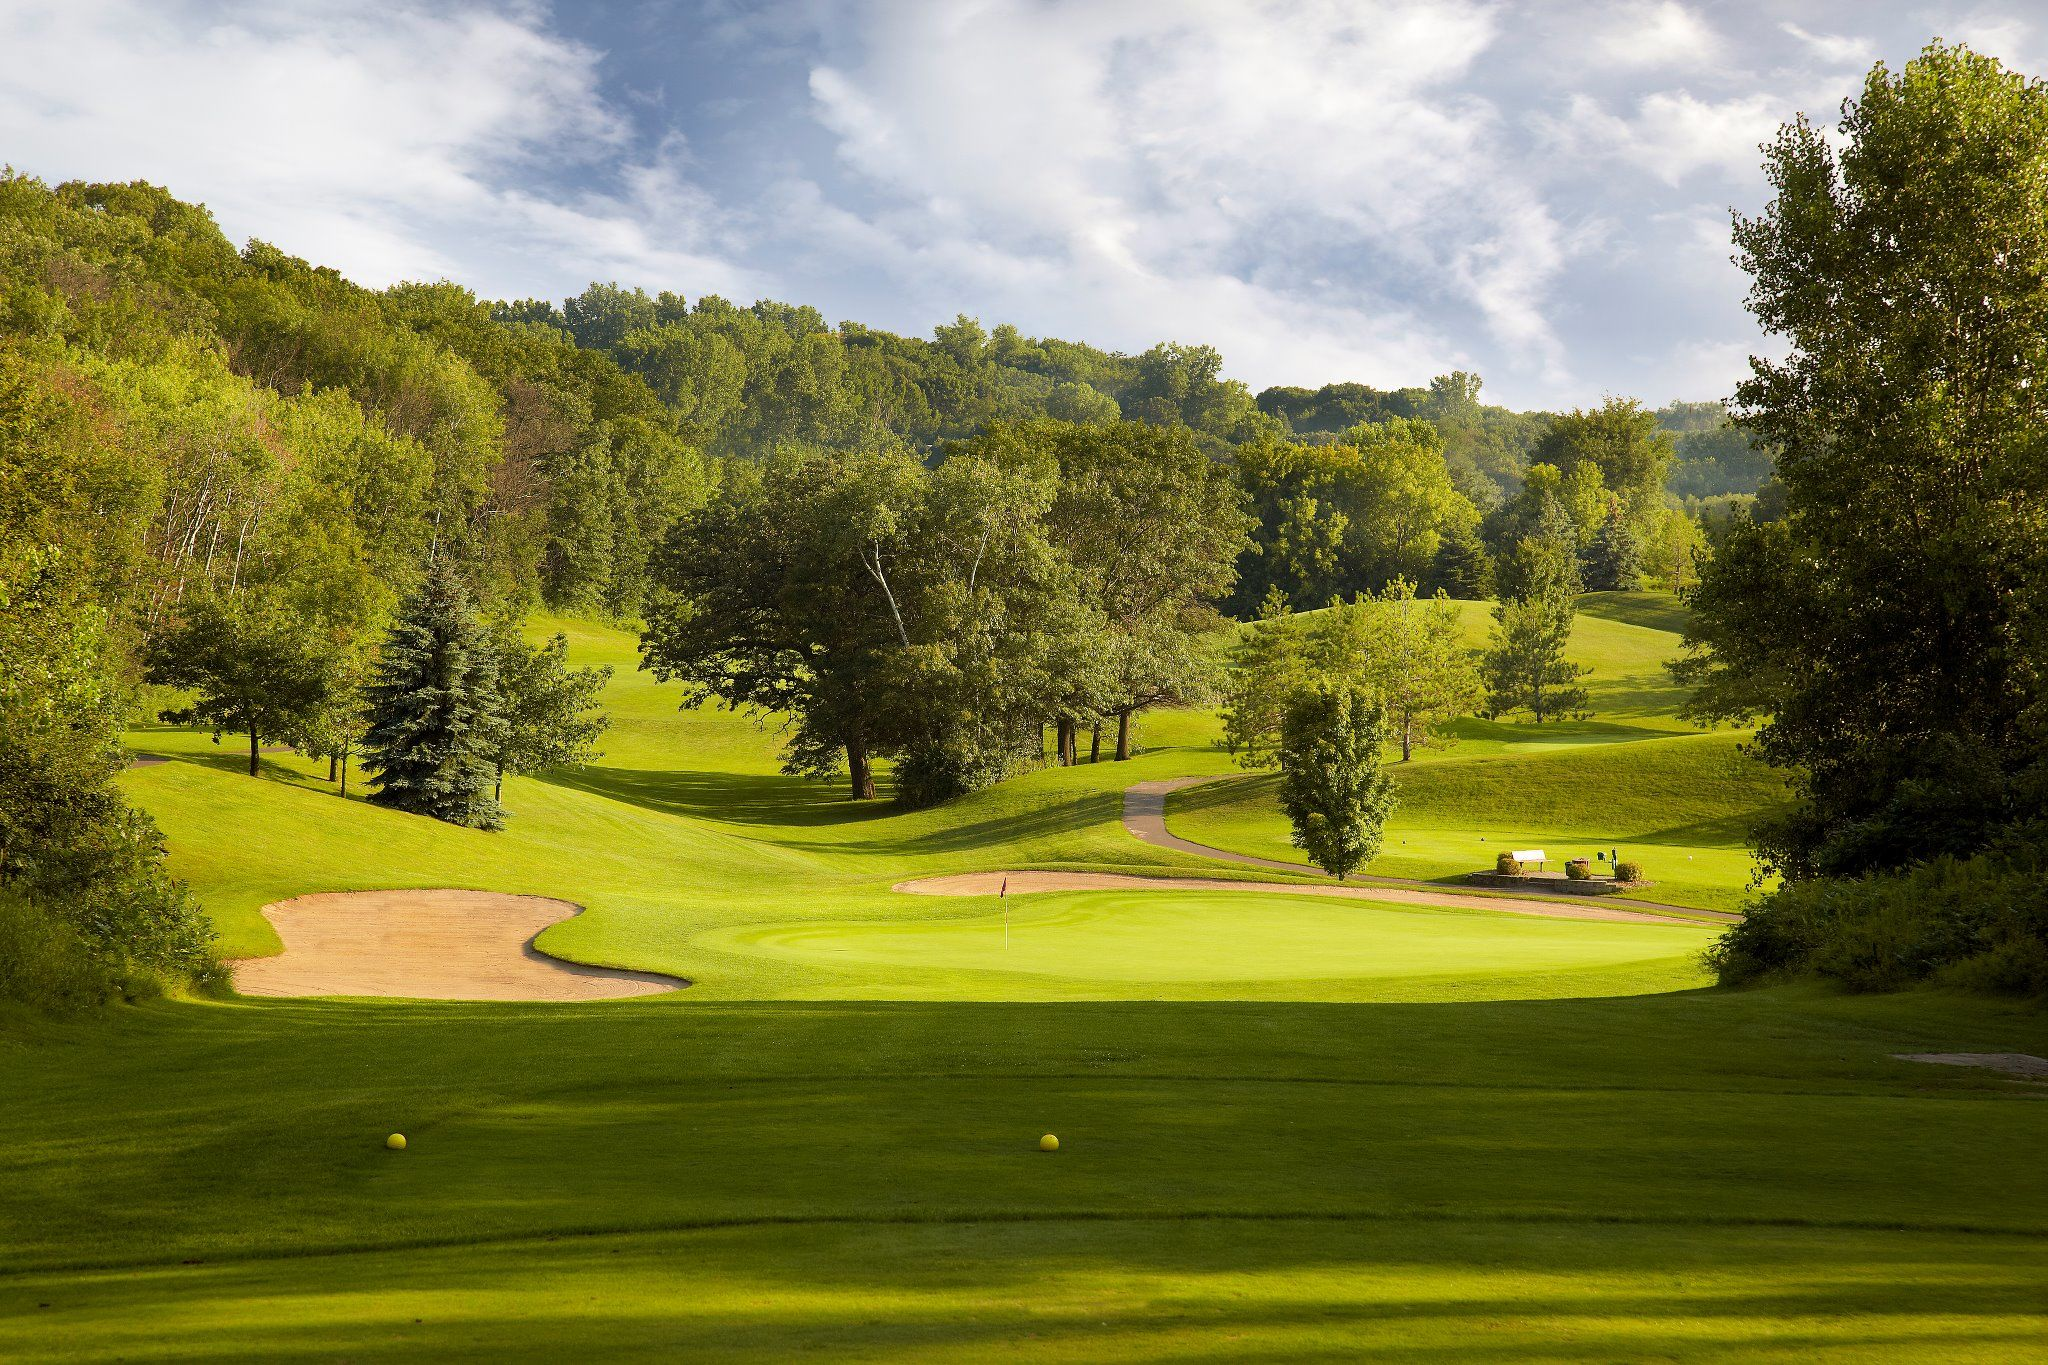 Braemar golf course cover picture